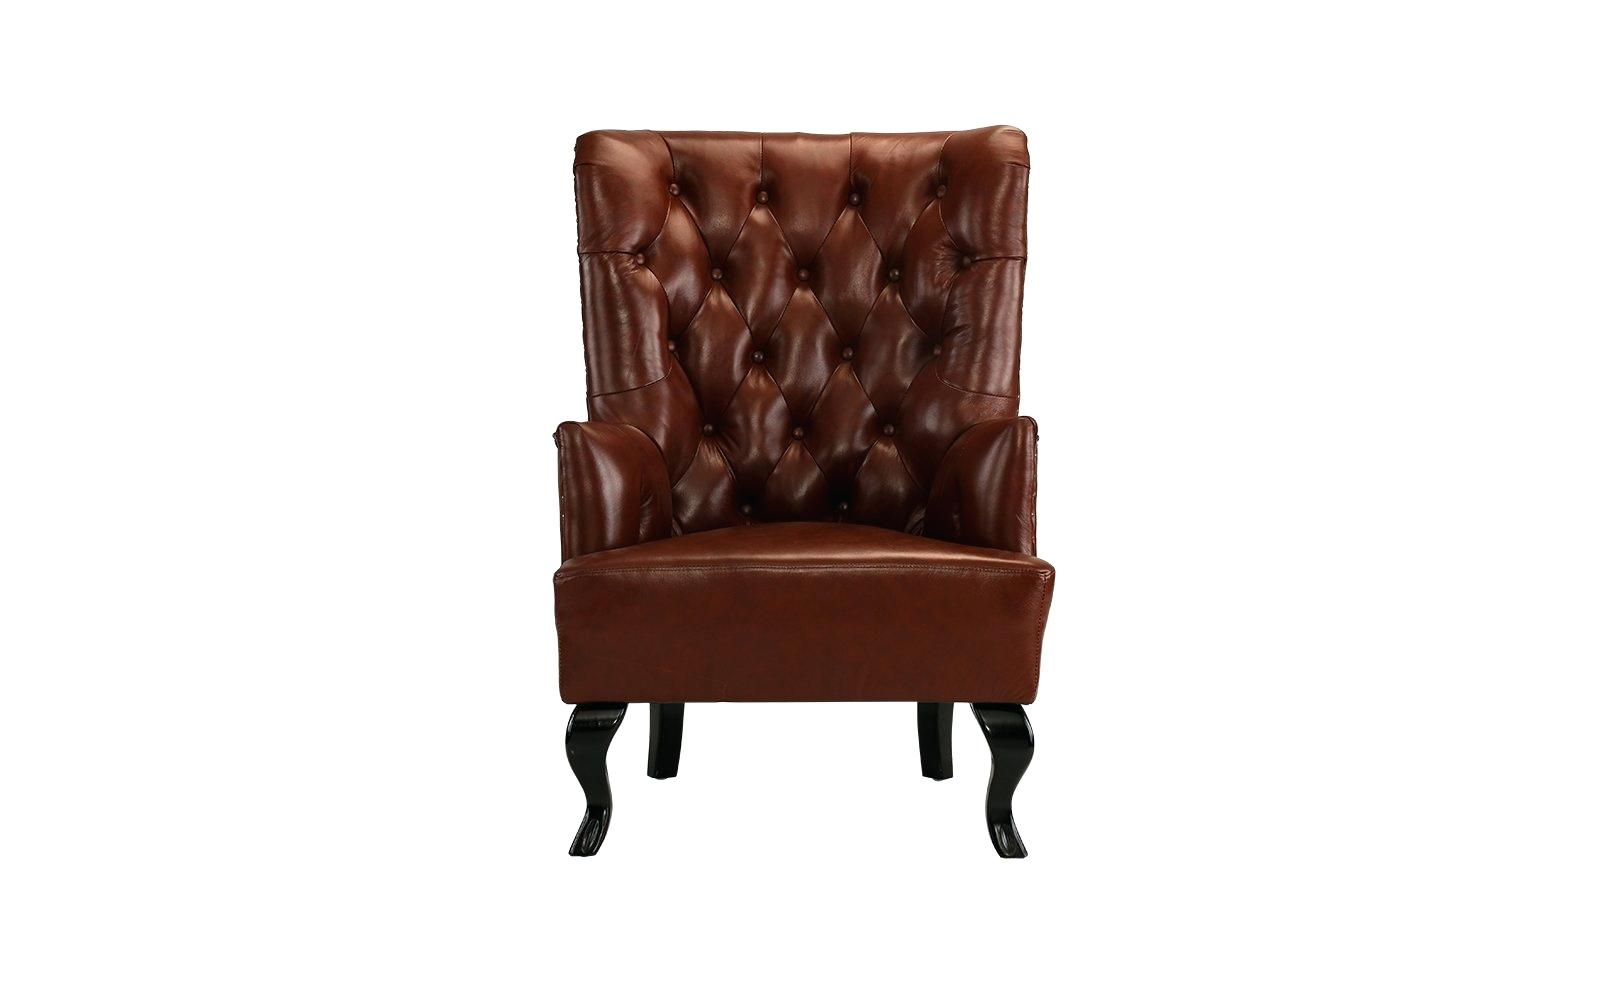 leather accent chairs mid century modern toronto tan chair for living room furniture west elm mini desk cool table legs gold nightstand target small bench outside wall clocks